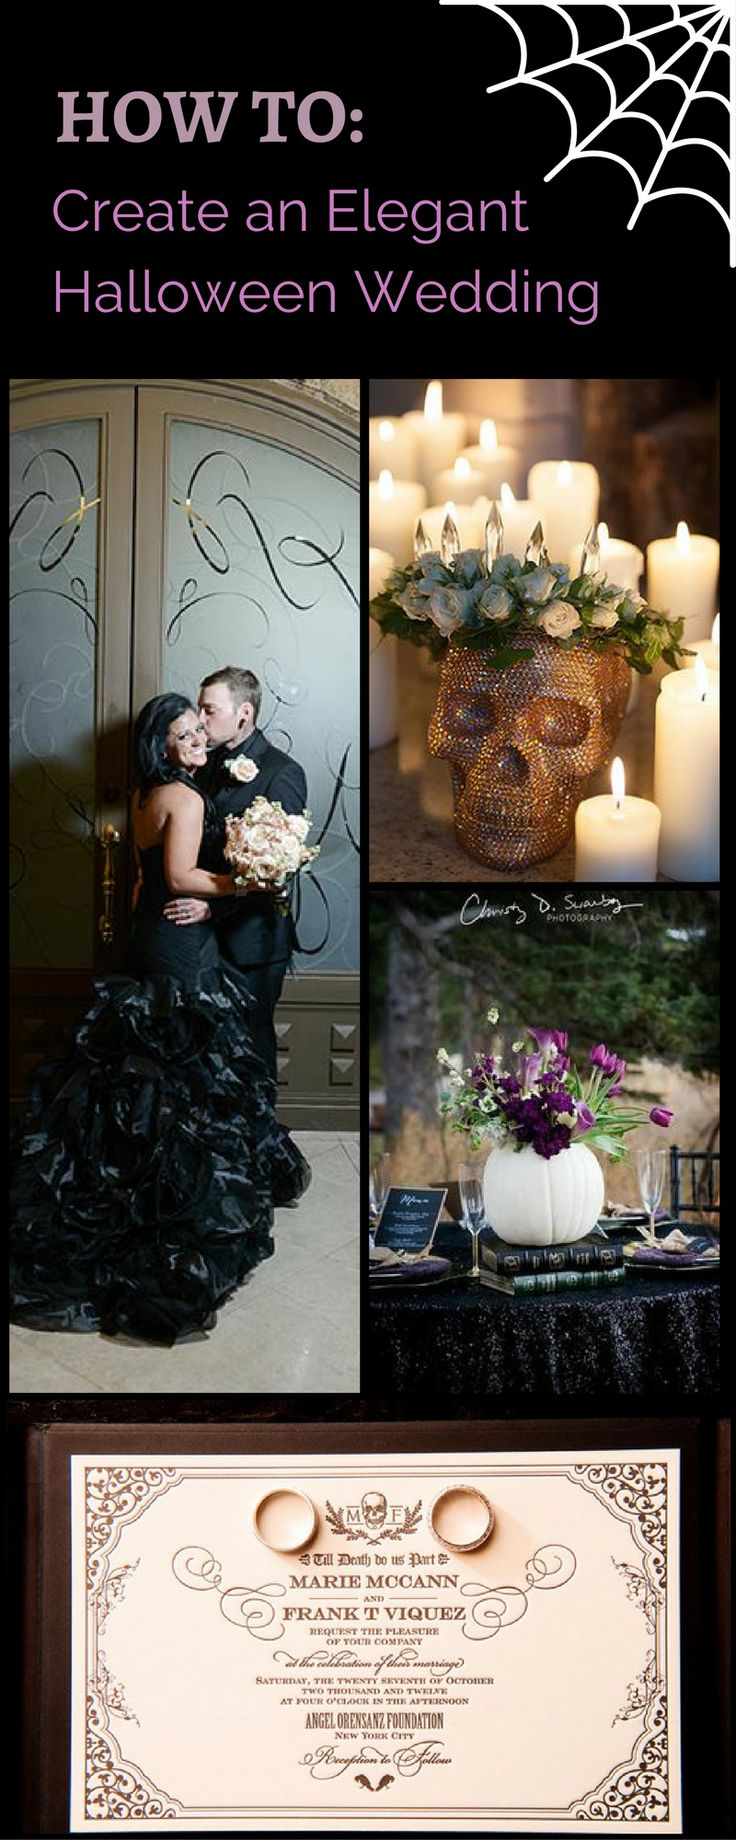 Best 25+ Halloween weddings ideas on Pinterest | Halloween wedding ...